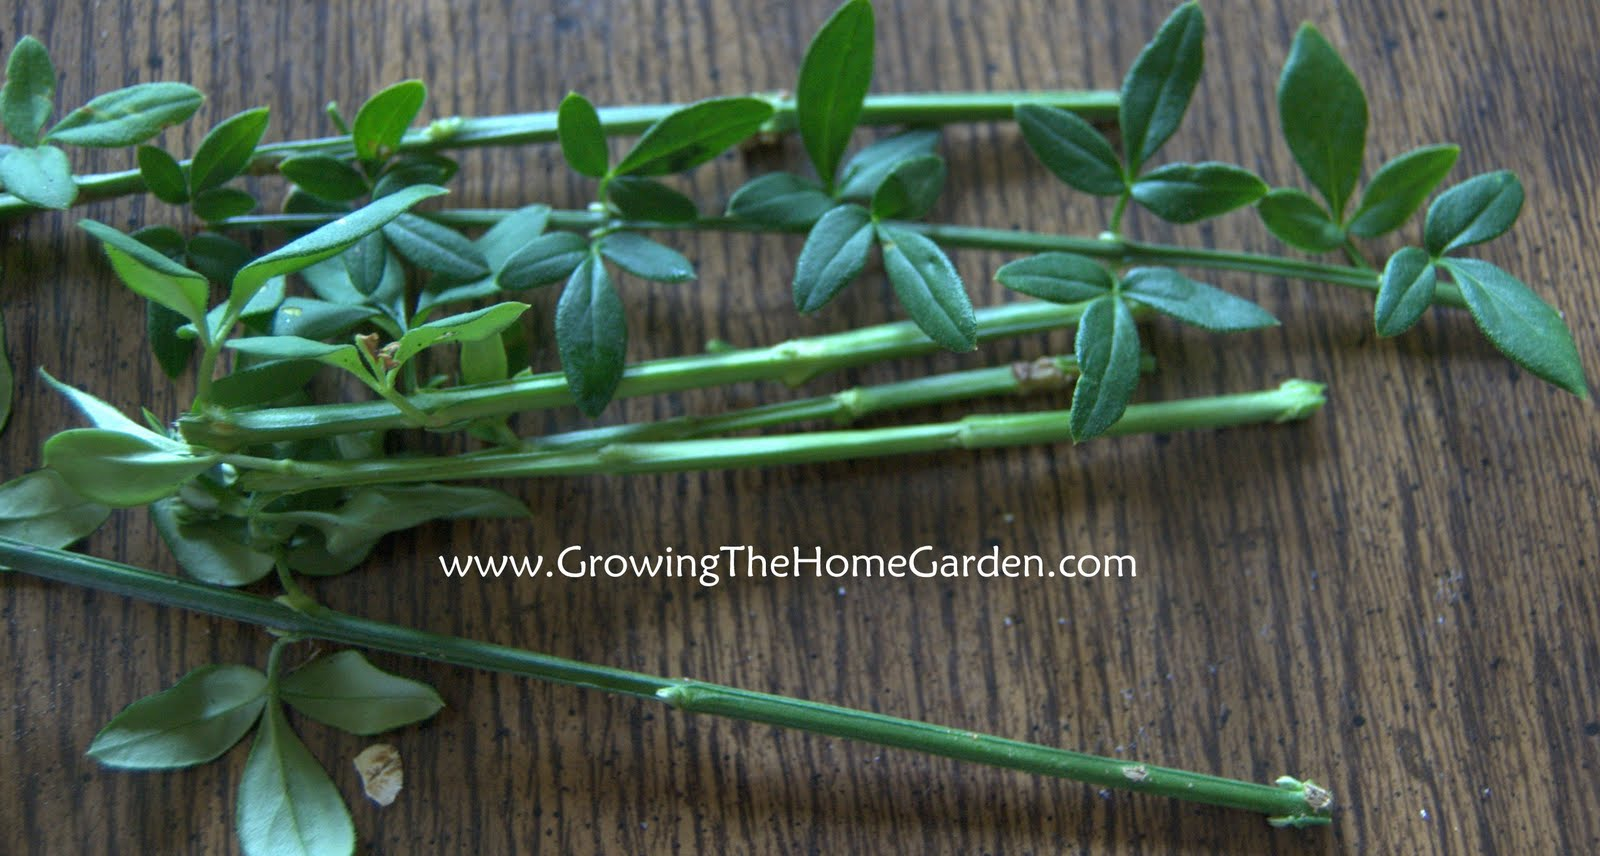 Taking advantage of aerial roots growing the home garden roots or no roots sticking the nodes into the rooting medium usually brings good results without rooting hormone winter jasmine roots well pretty much izmirmasajfo Image collections